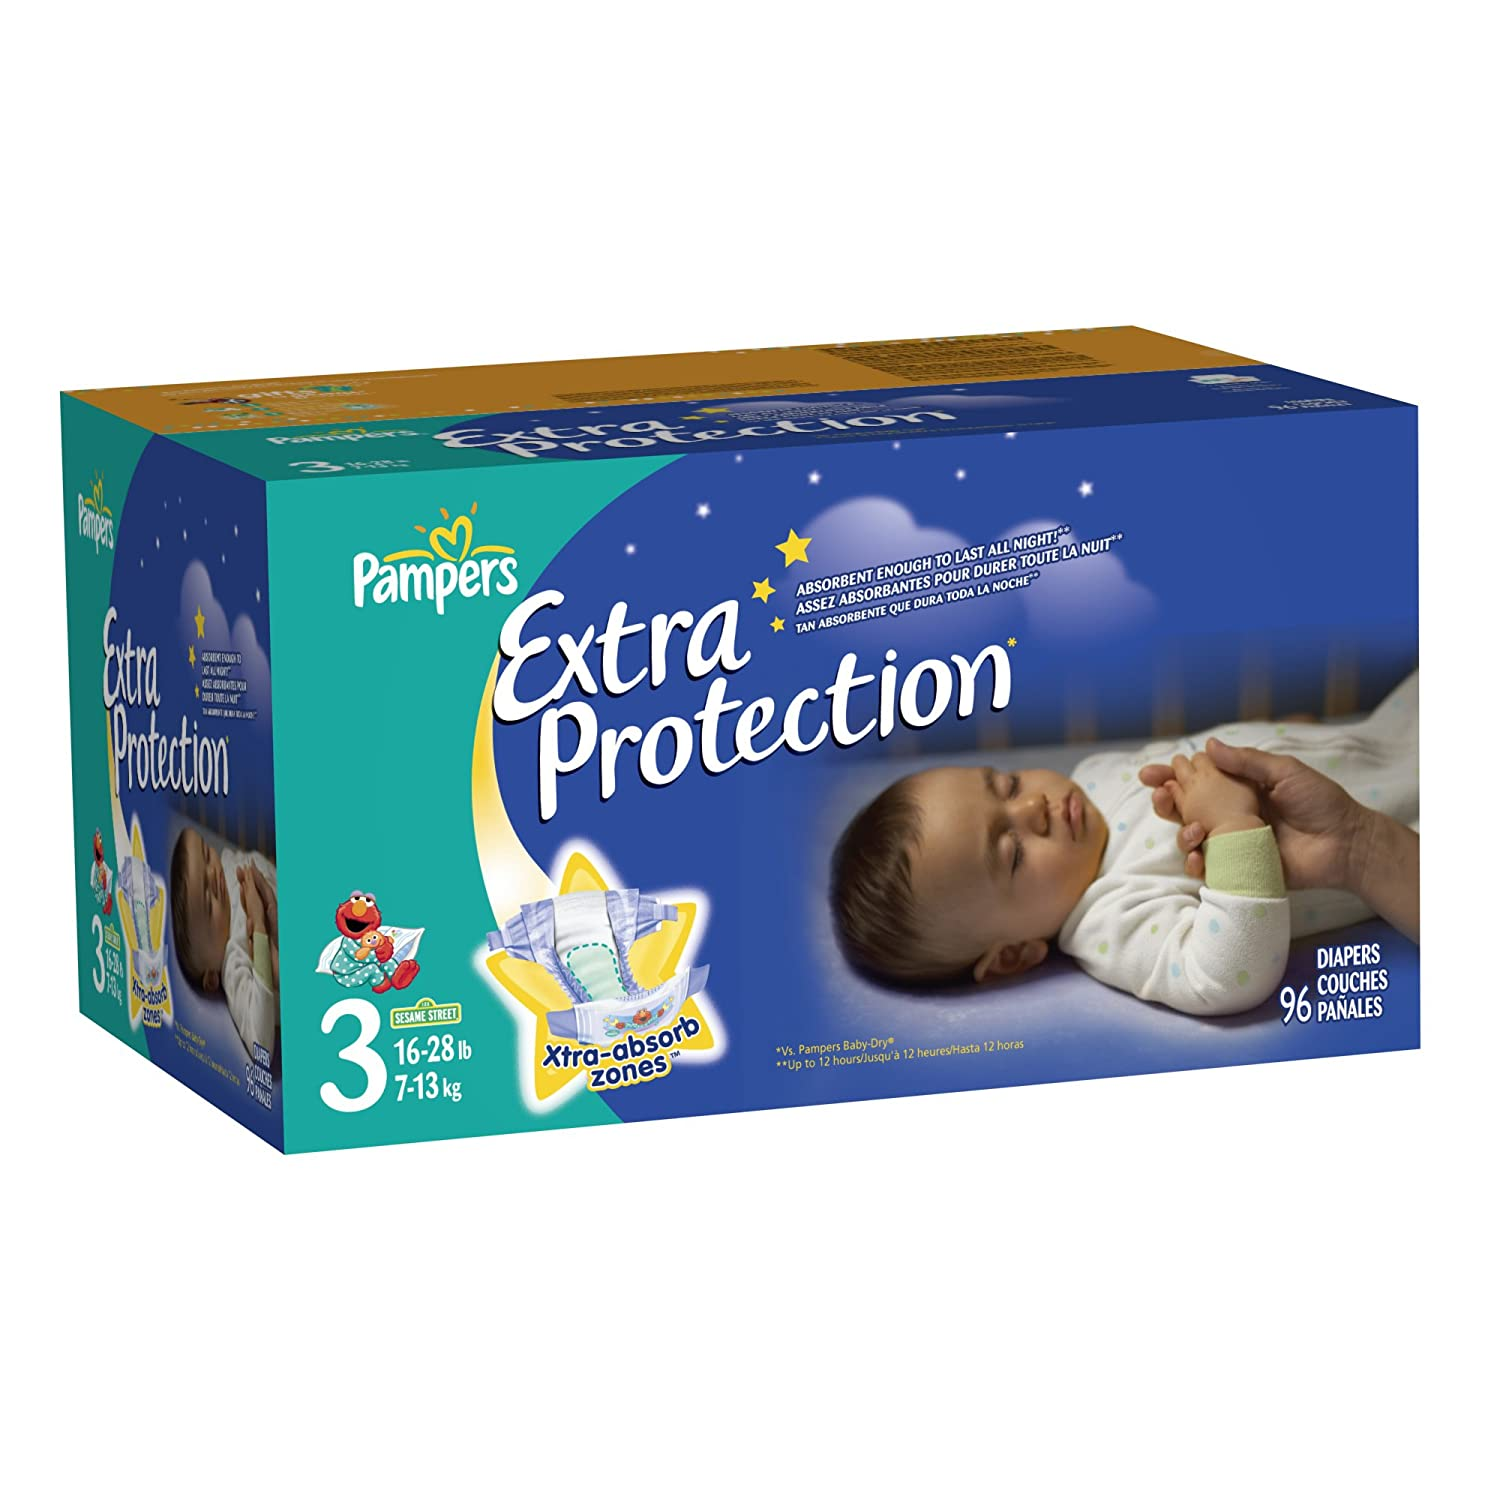 Amazon pampers extra protection nighttime diapers super pack amazon pampers extra protection nighttime diapers super pack size 3 96 count health personal care nvjuhfo Image collections